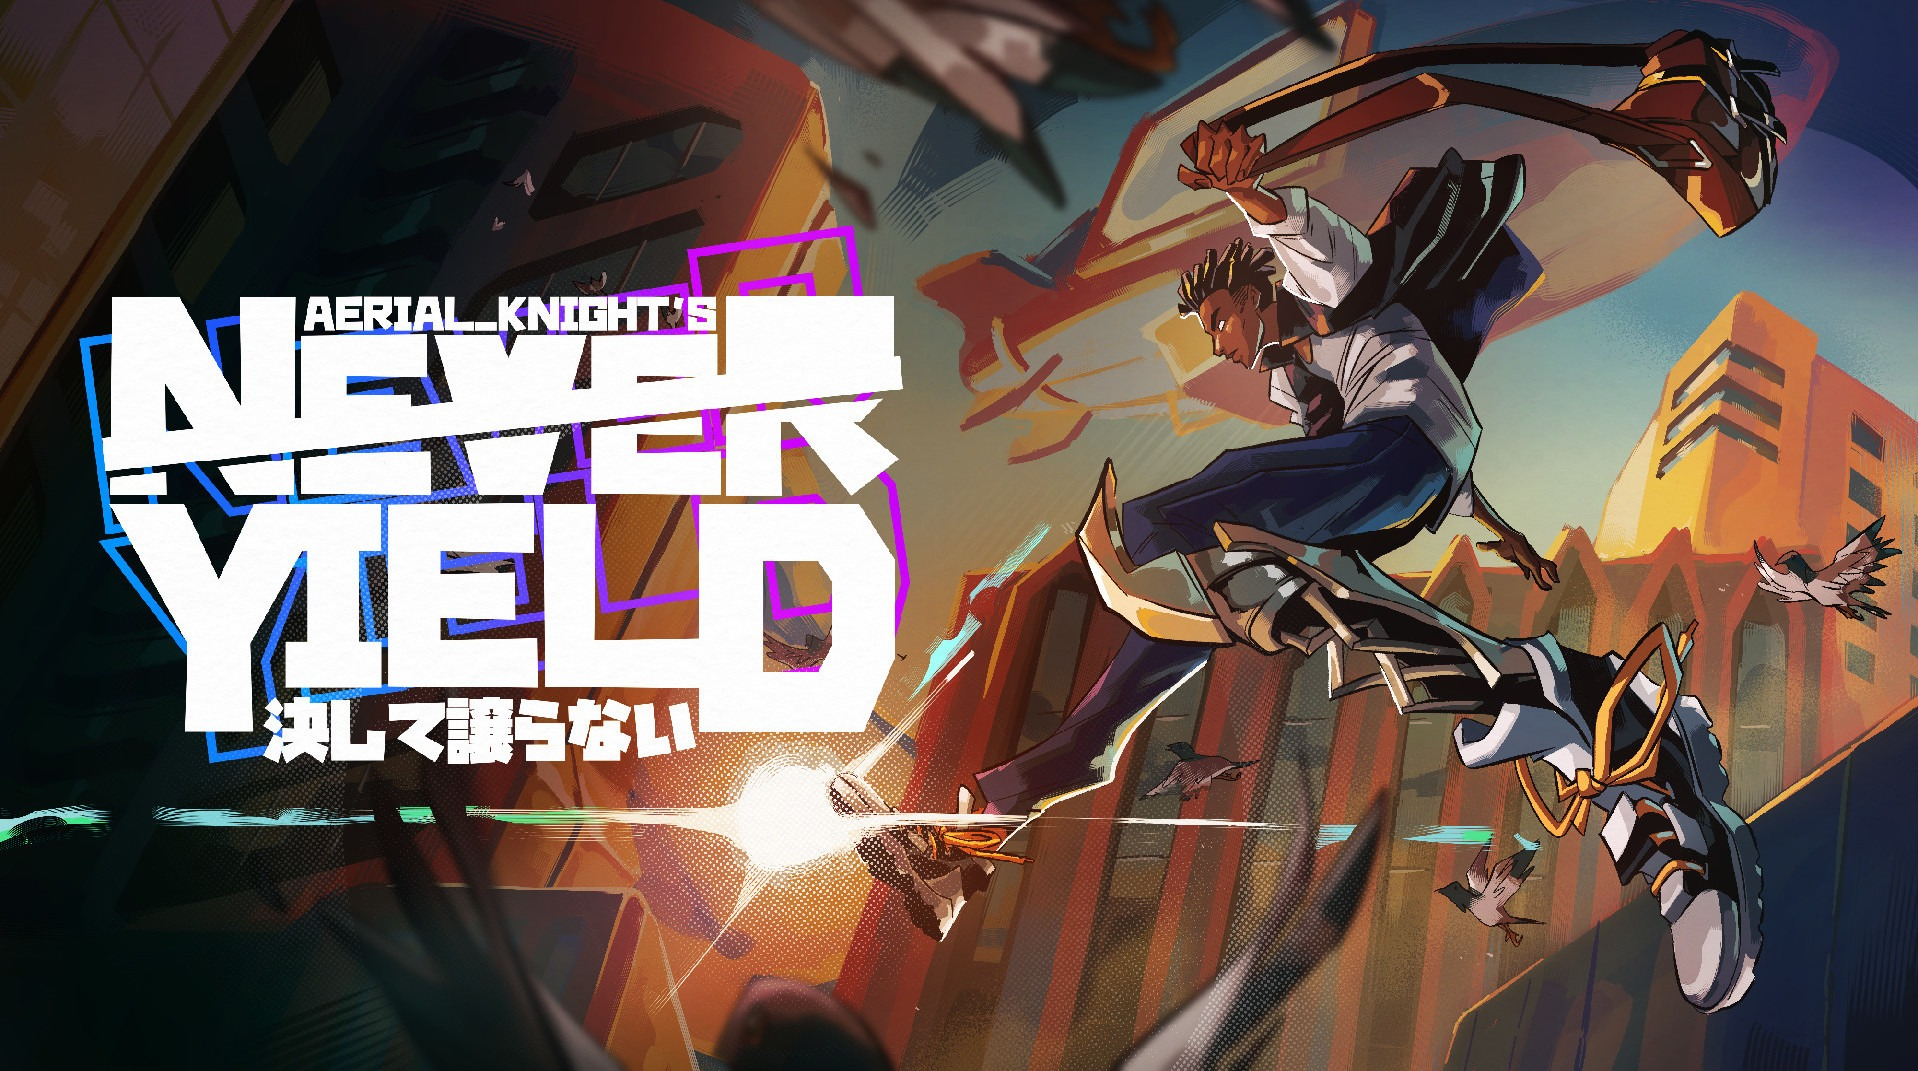 AerialKnight's Never Yield Gets Release Date